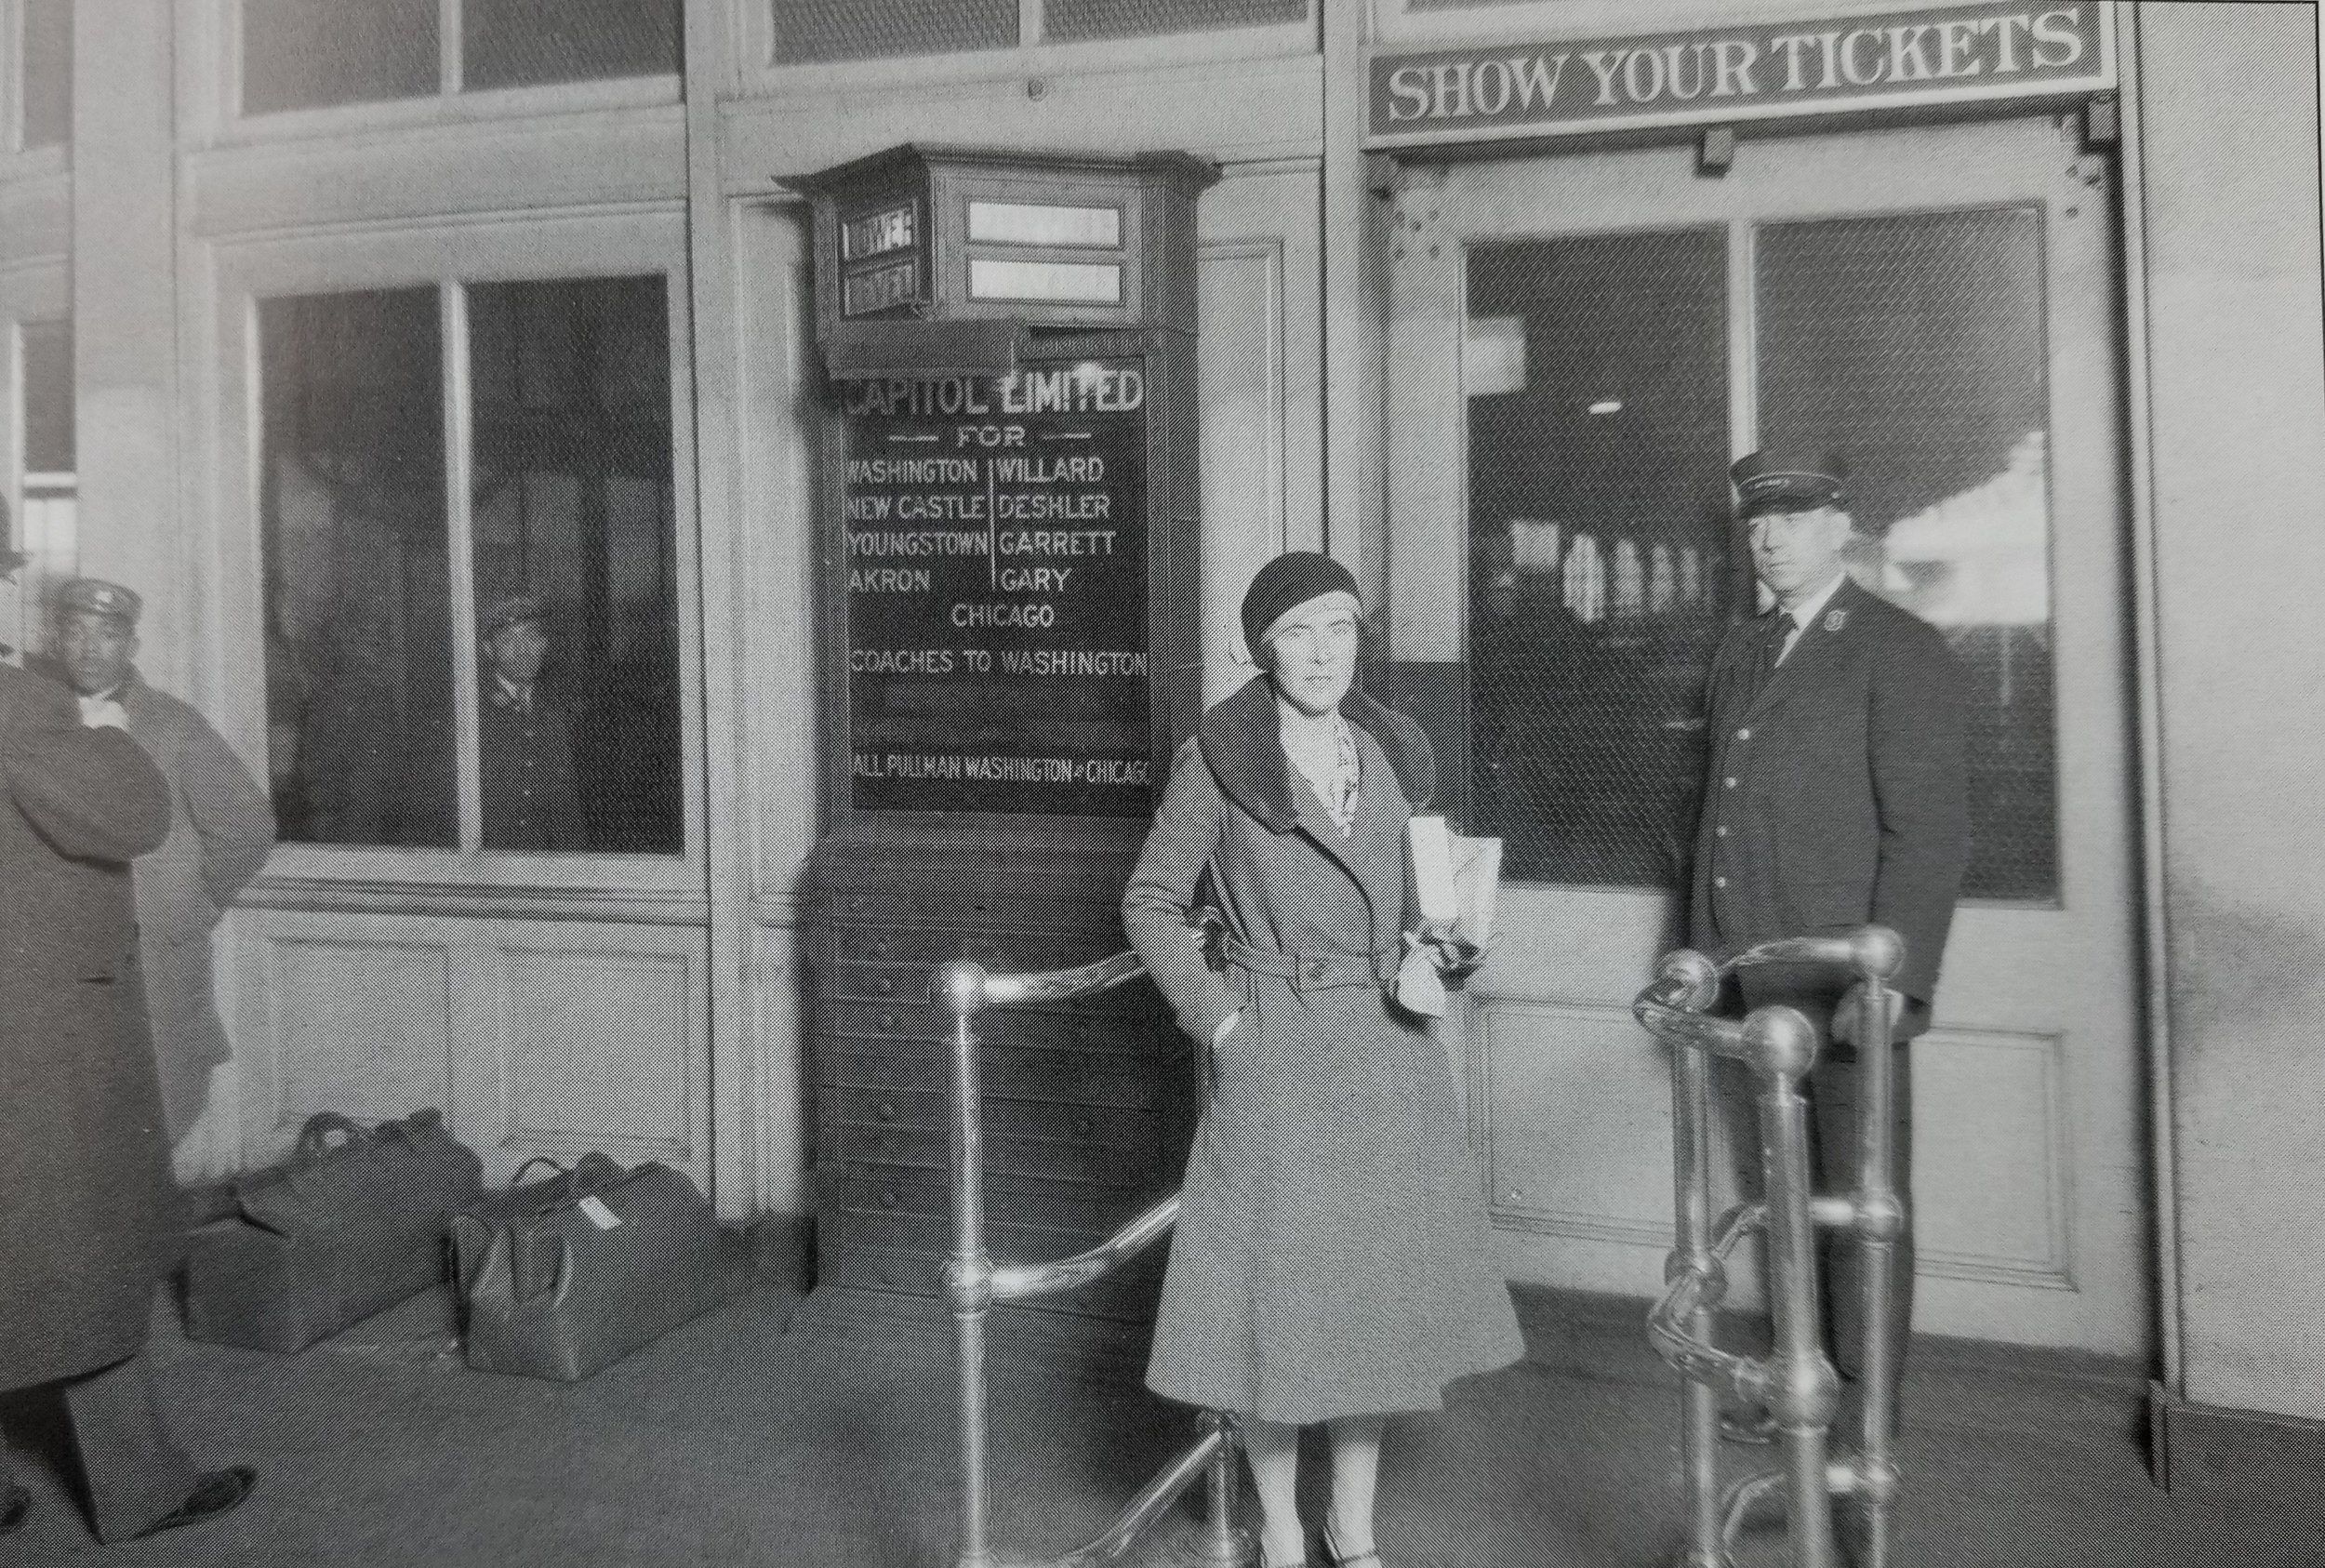 """A passenger waits to board at Camden Station in the 1920's, most likely she will be riding the Baltimore & Ohio's """"Capital Limited"""" which travels from D.C. to Chicago. Date: 1920's. Source: Unknown."""